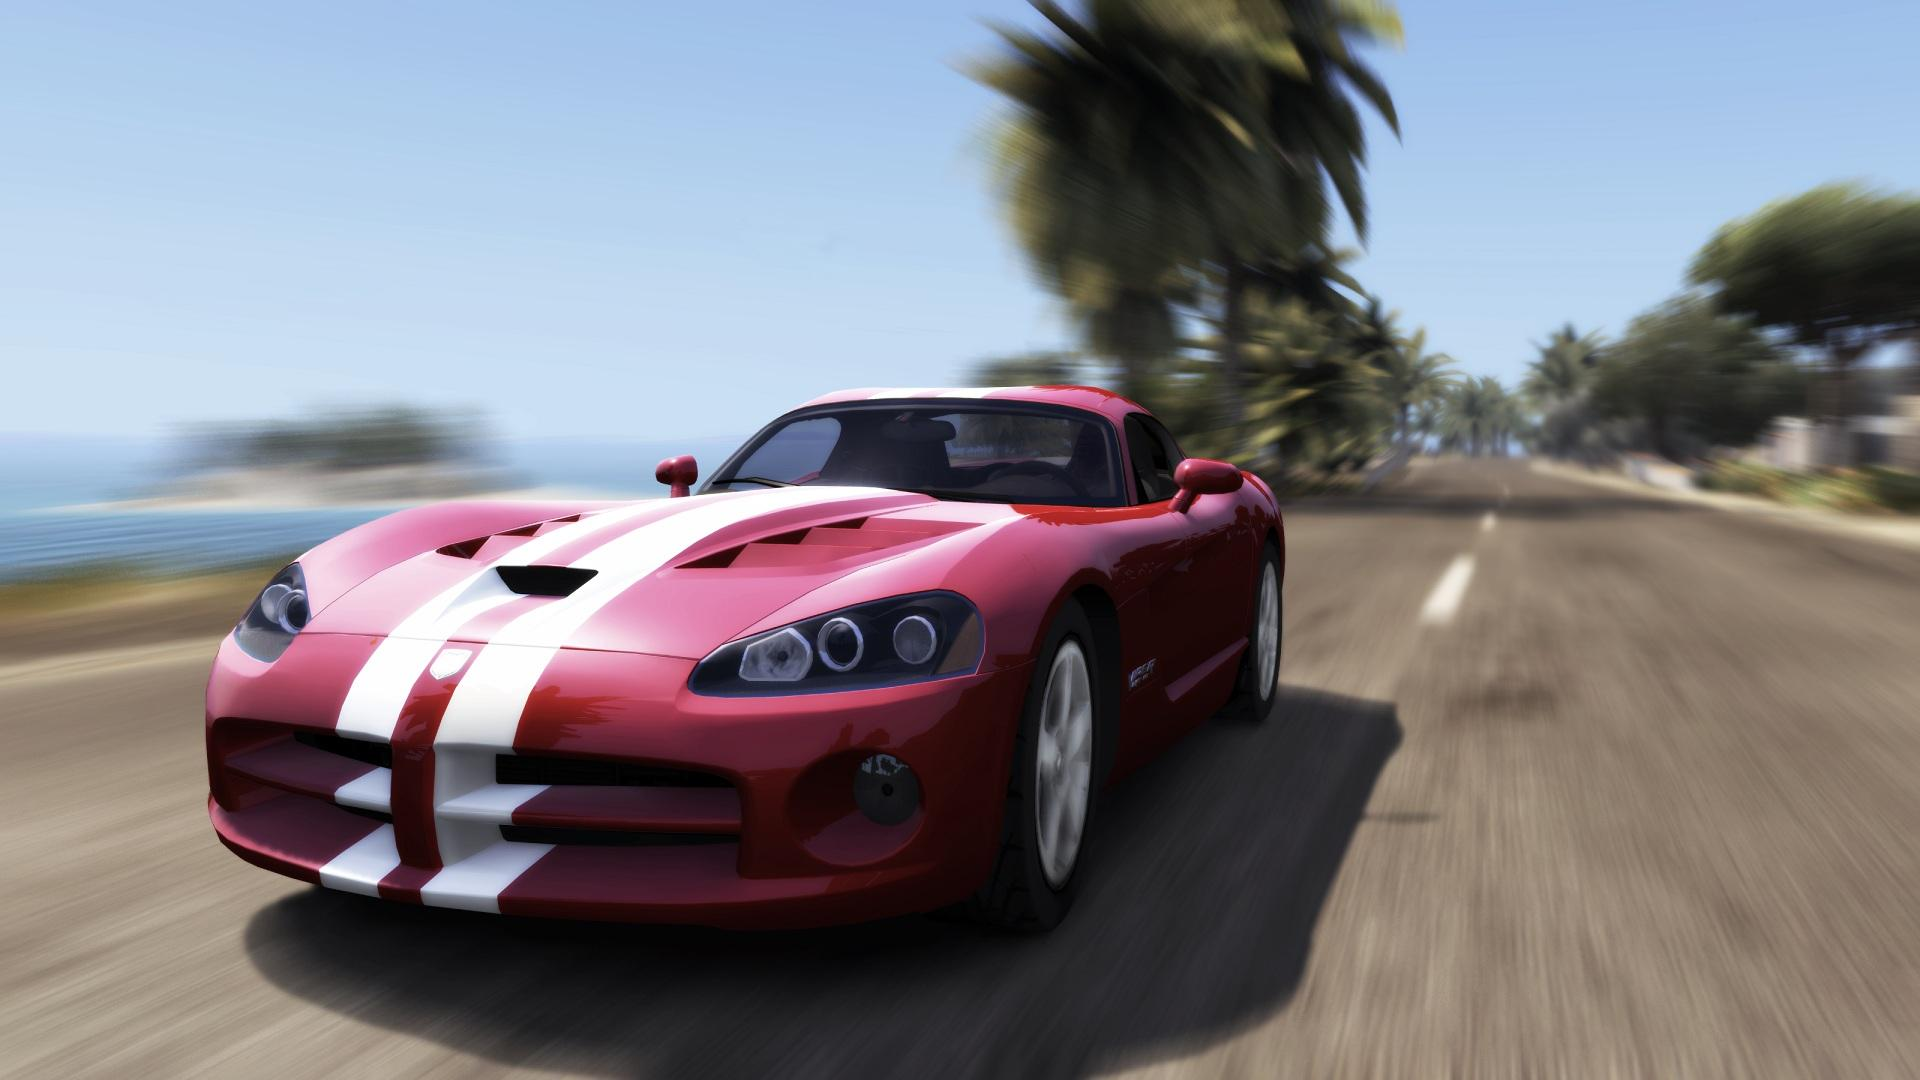 Test Drive Unlimited 2 on HD Wallpaper